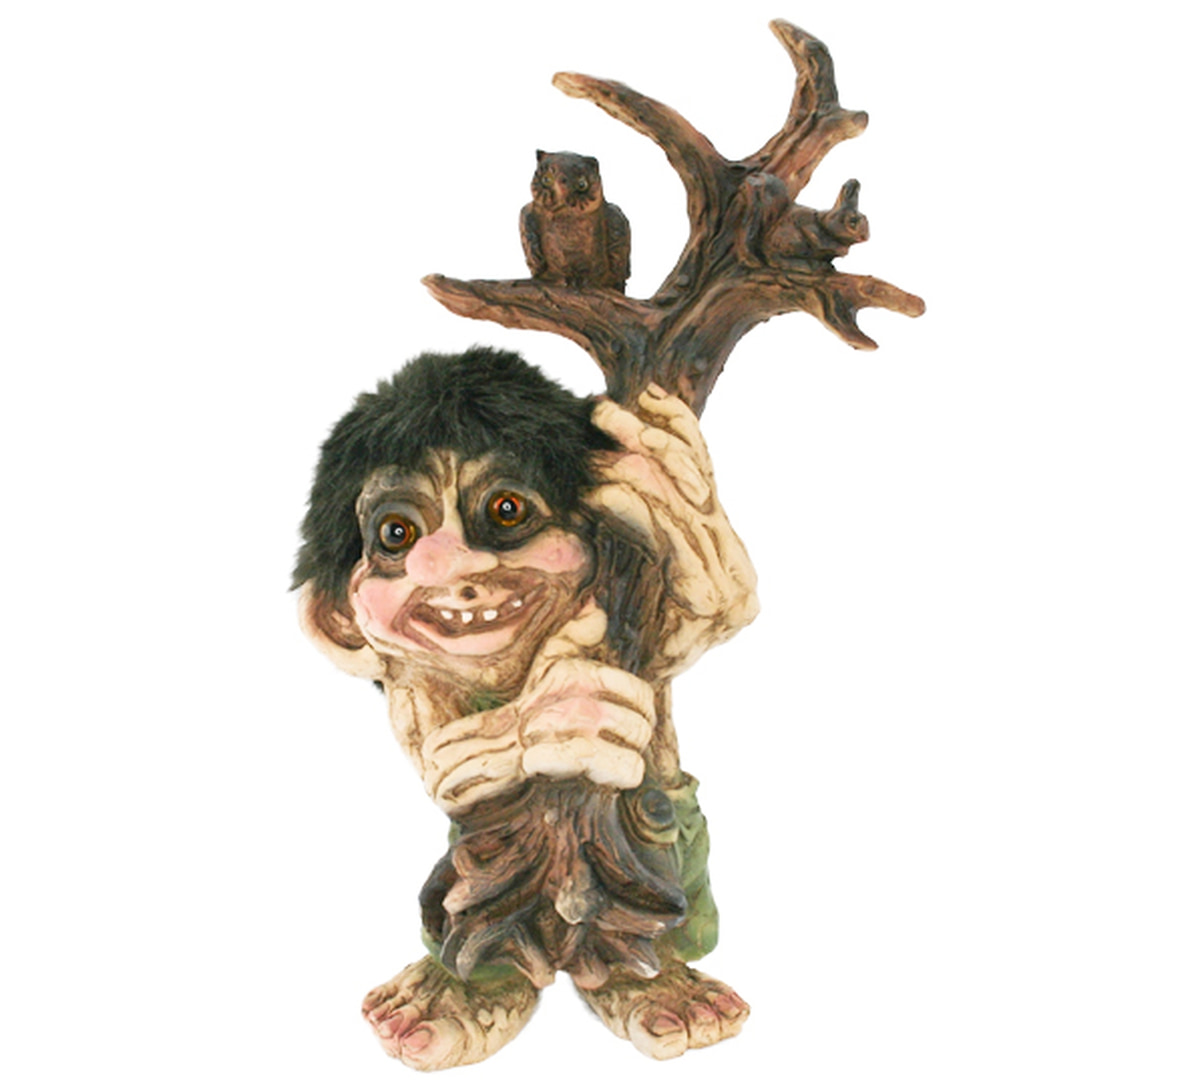 Troll holding tree with owl, Limited edition (Troll # 321)